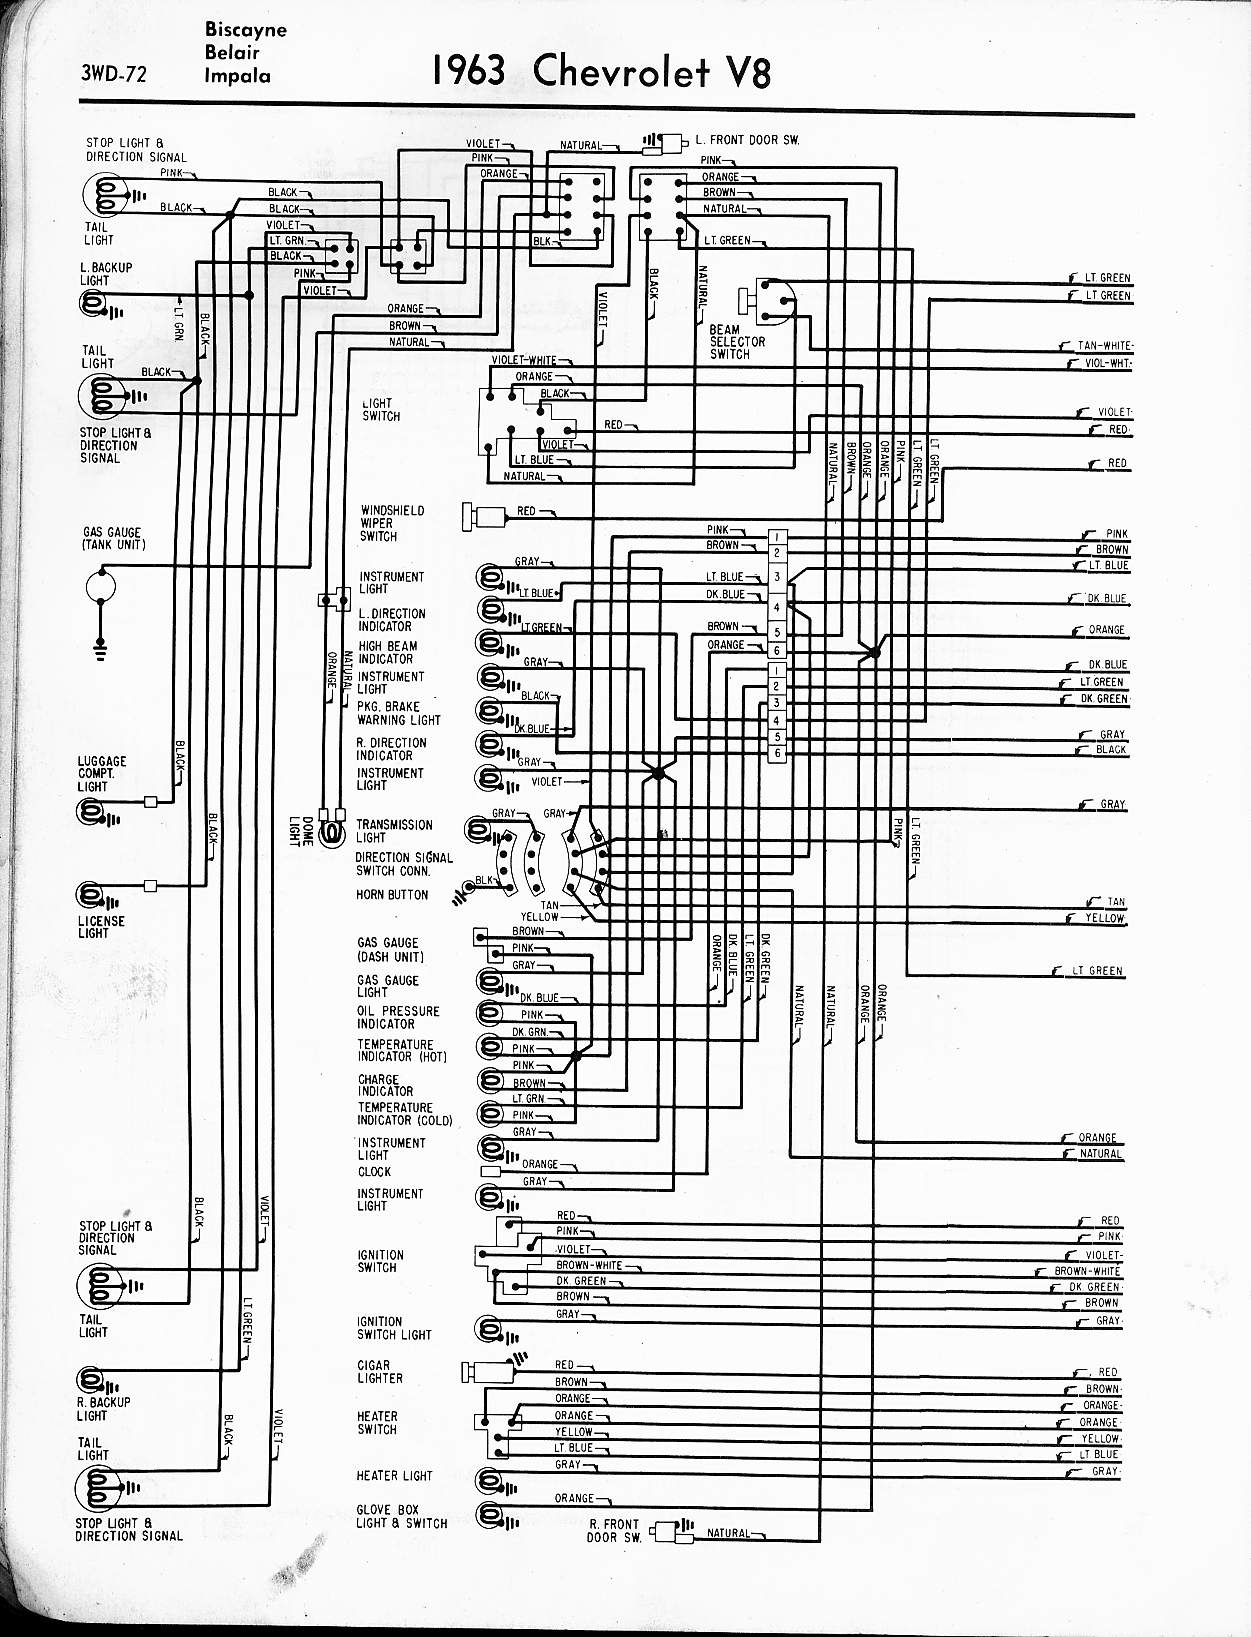 1968 nova wiring diagram, Wiring diagram